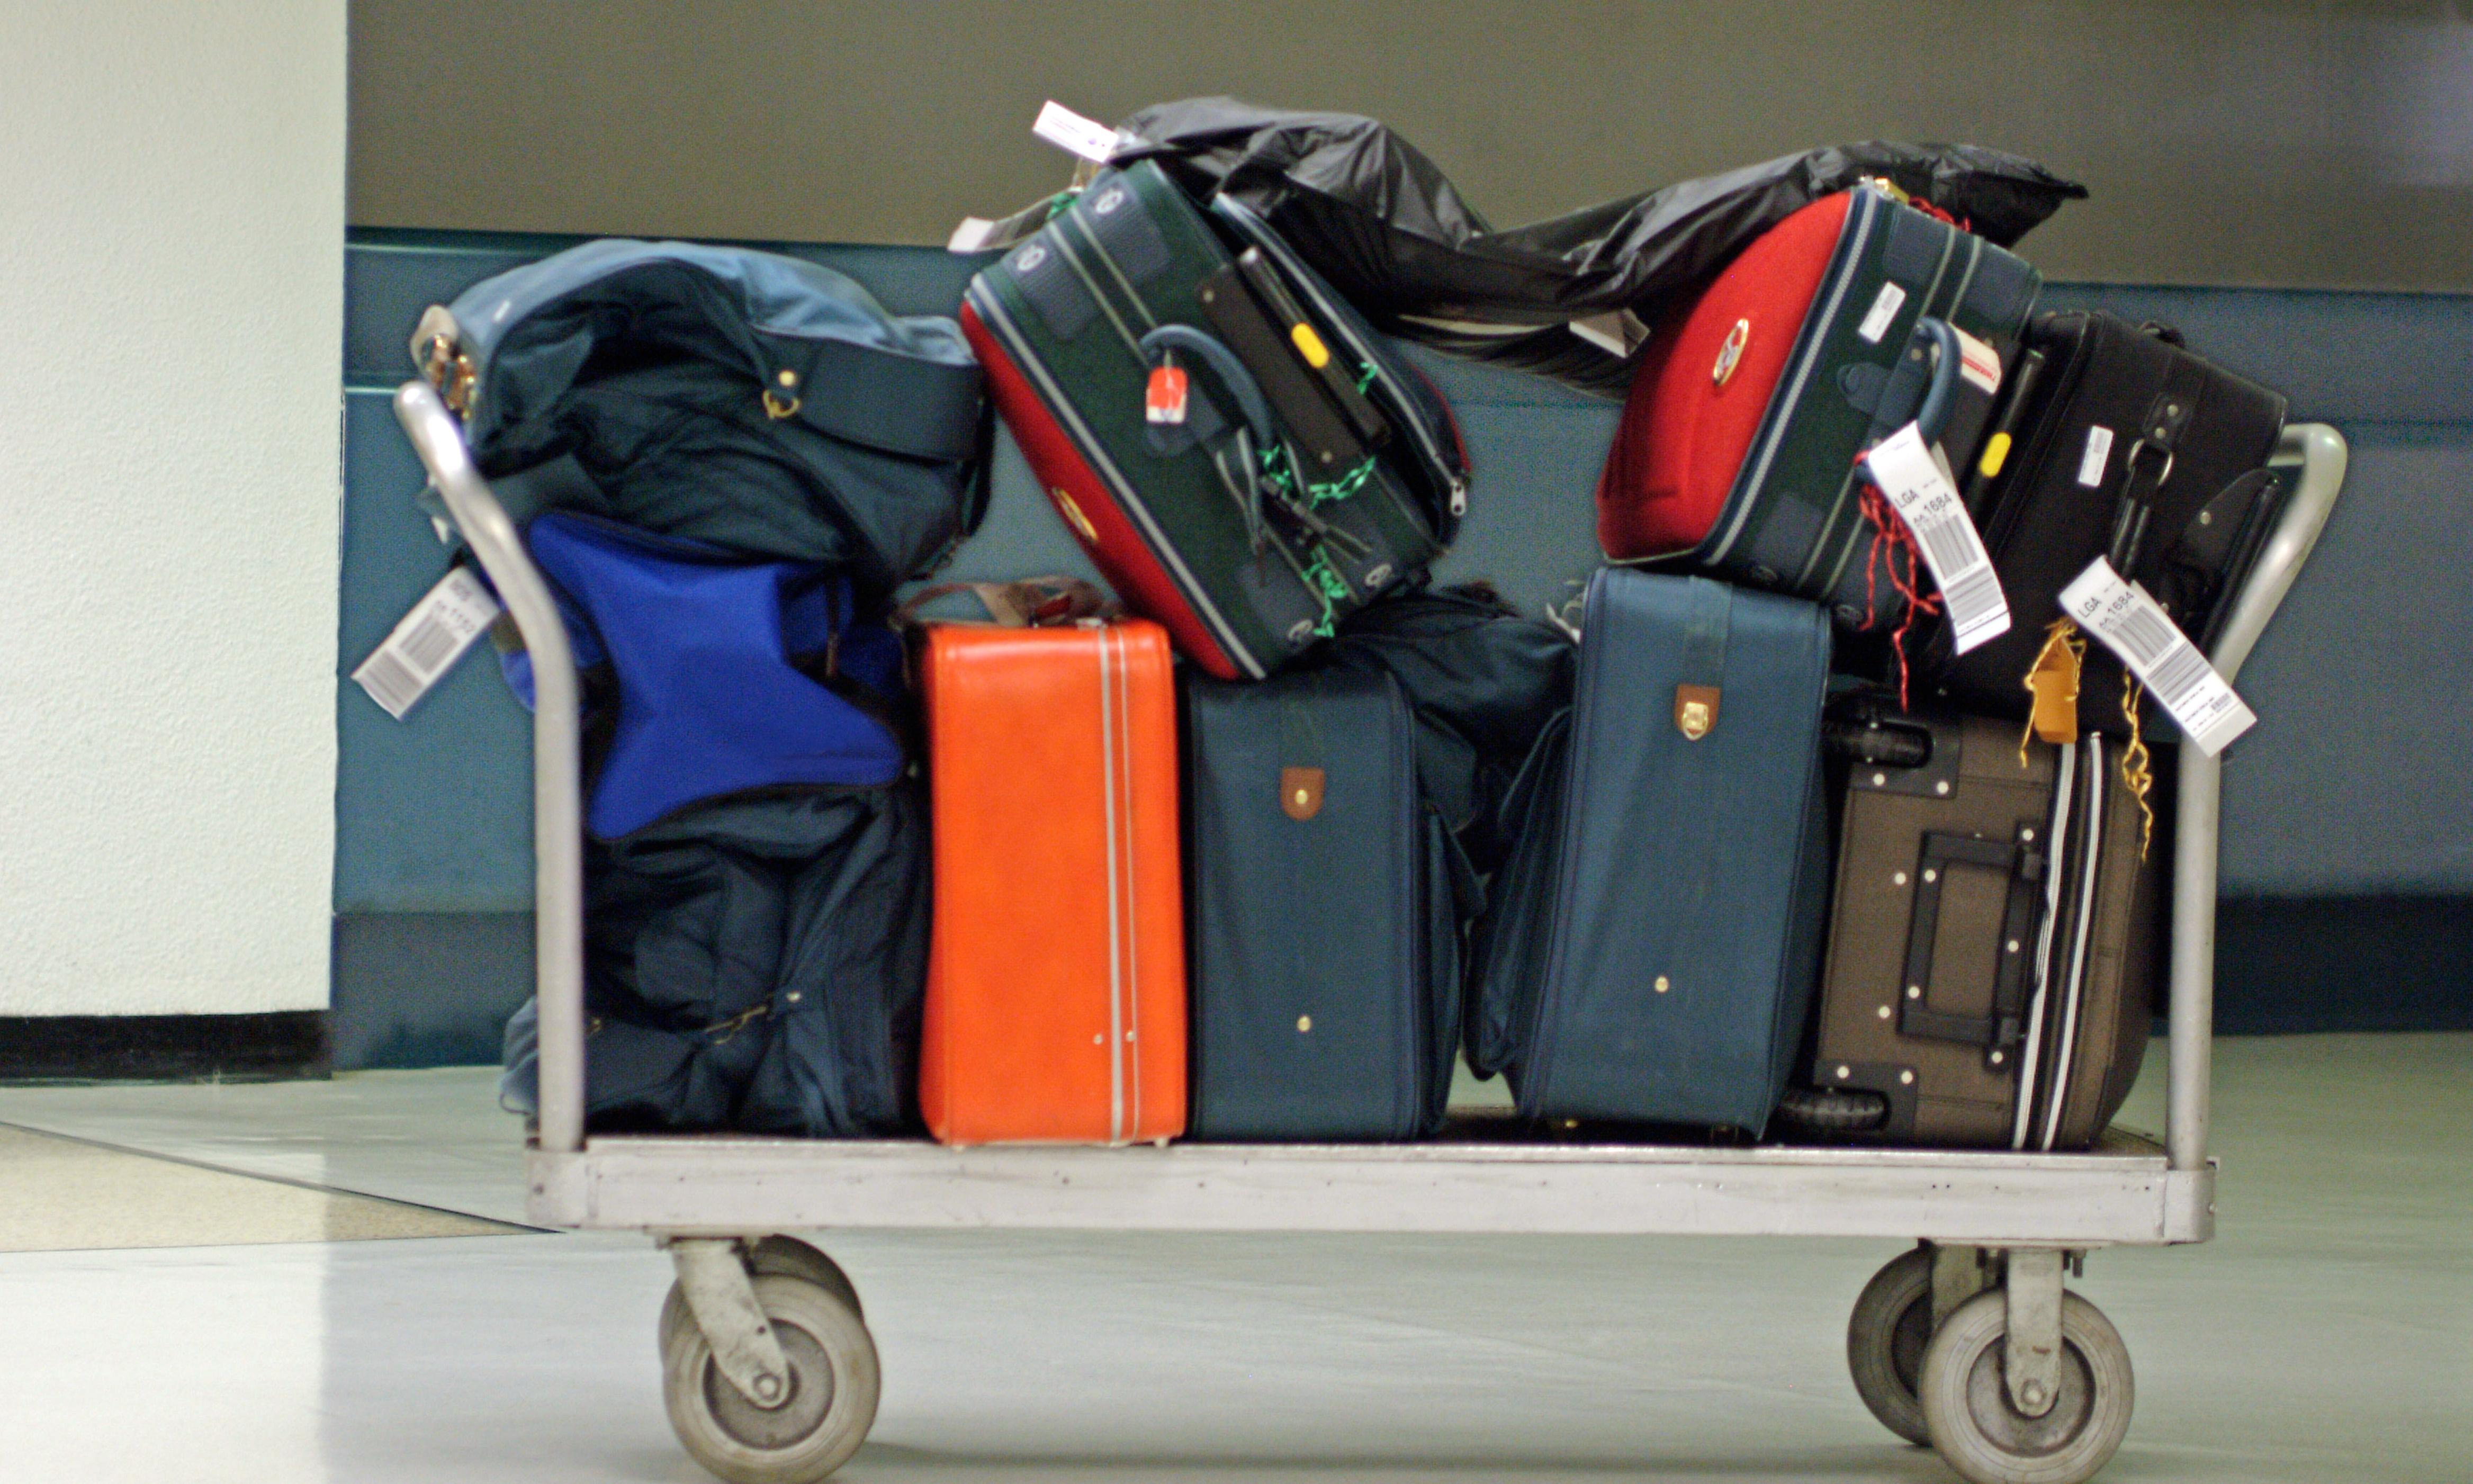 Would you run 100 miles in brogues? The worst cases of lost luggage